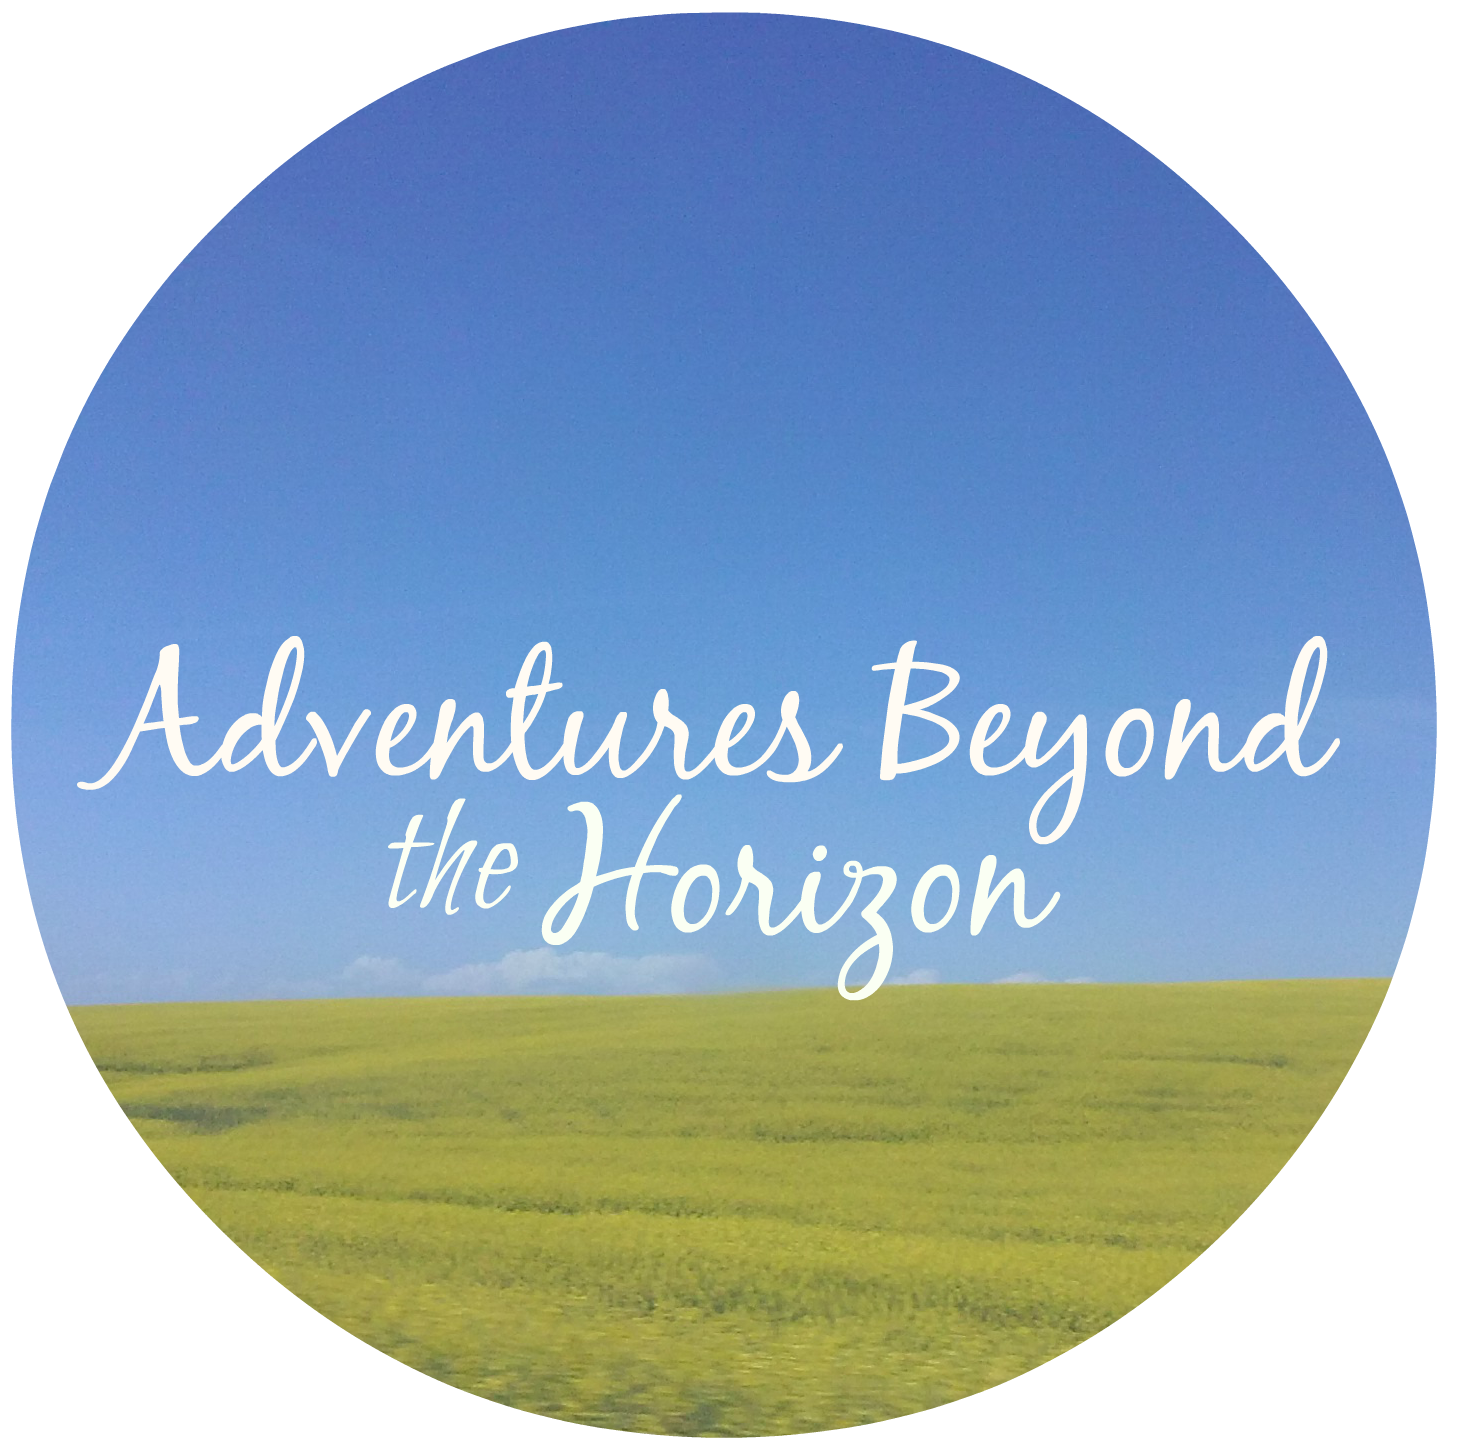 Adventures Beyond the Horizon